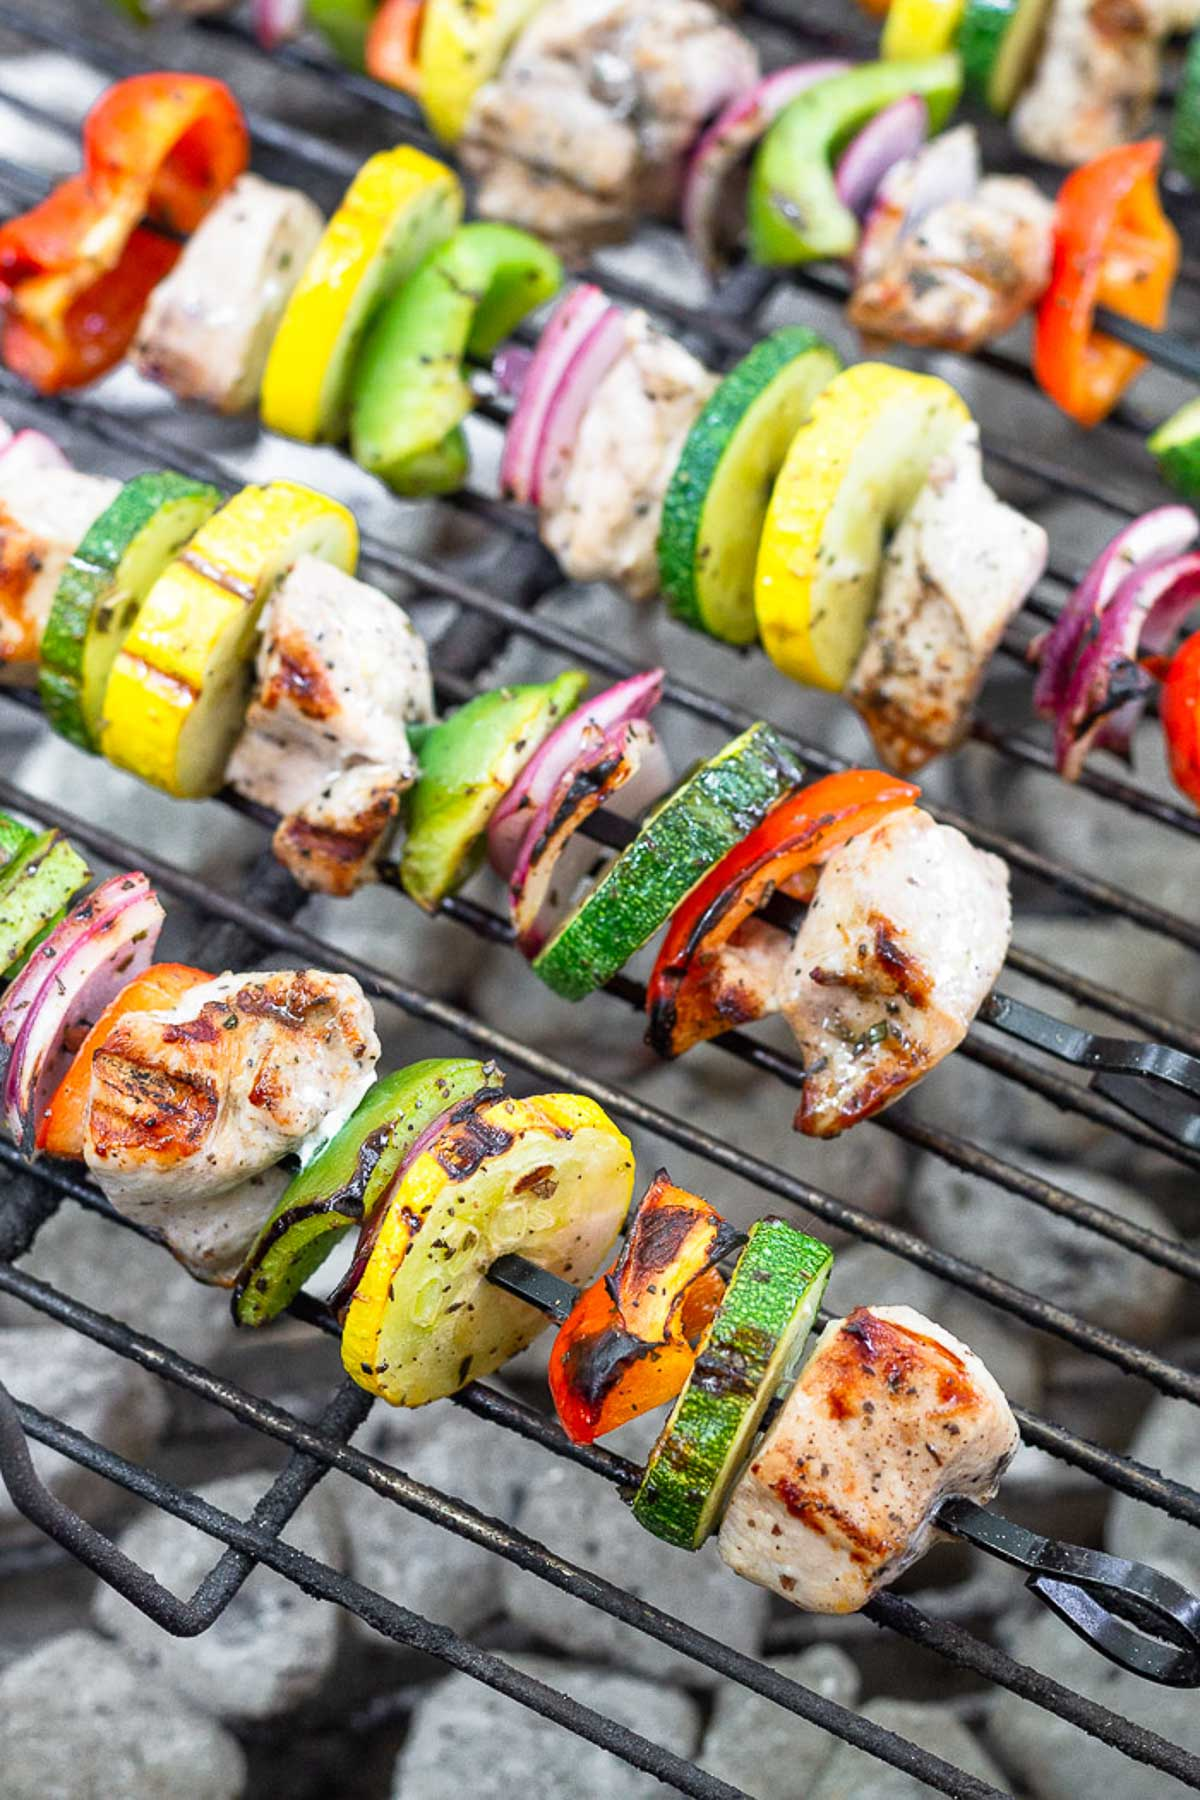 Chicken and veggie kabobs on a charcoal grill.